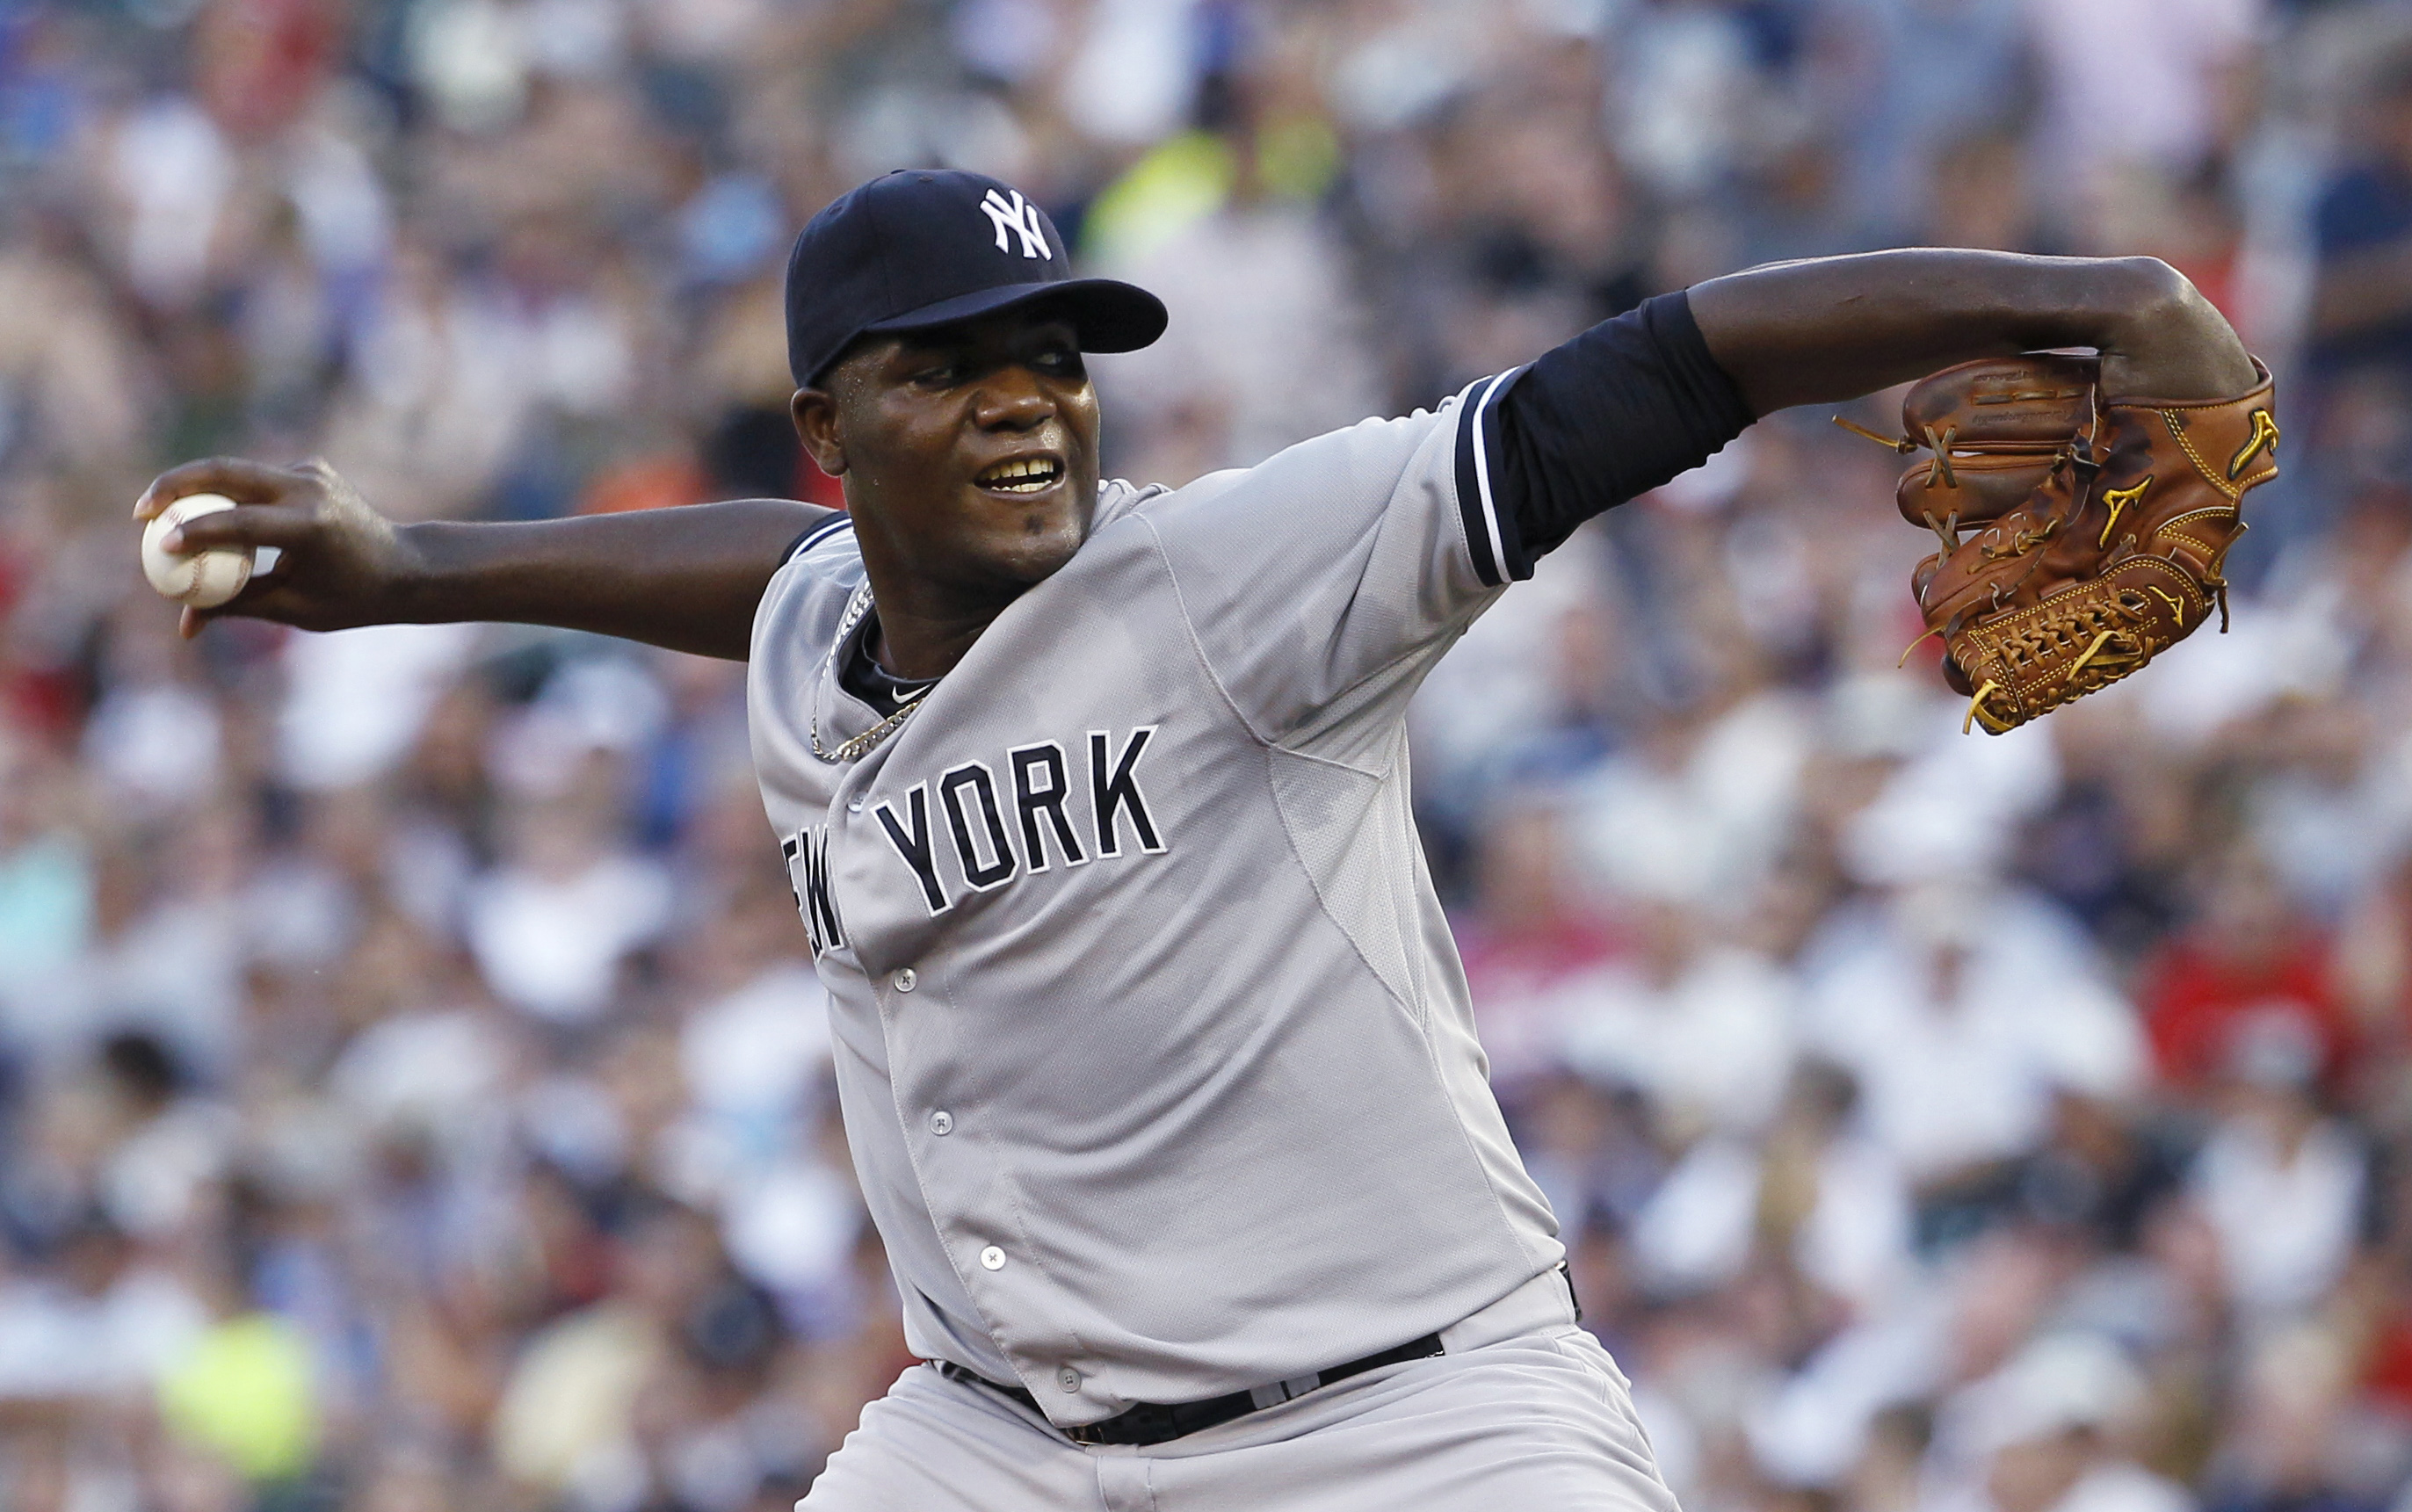 New York Yankees starting pitcher Michael Pineda delivers to the Minnesota Twins during the first inning of a baseball game in Minneapolis, Friday, July 24, 2015. (AP Photo/Ann Heisenfelt)